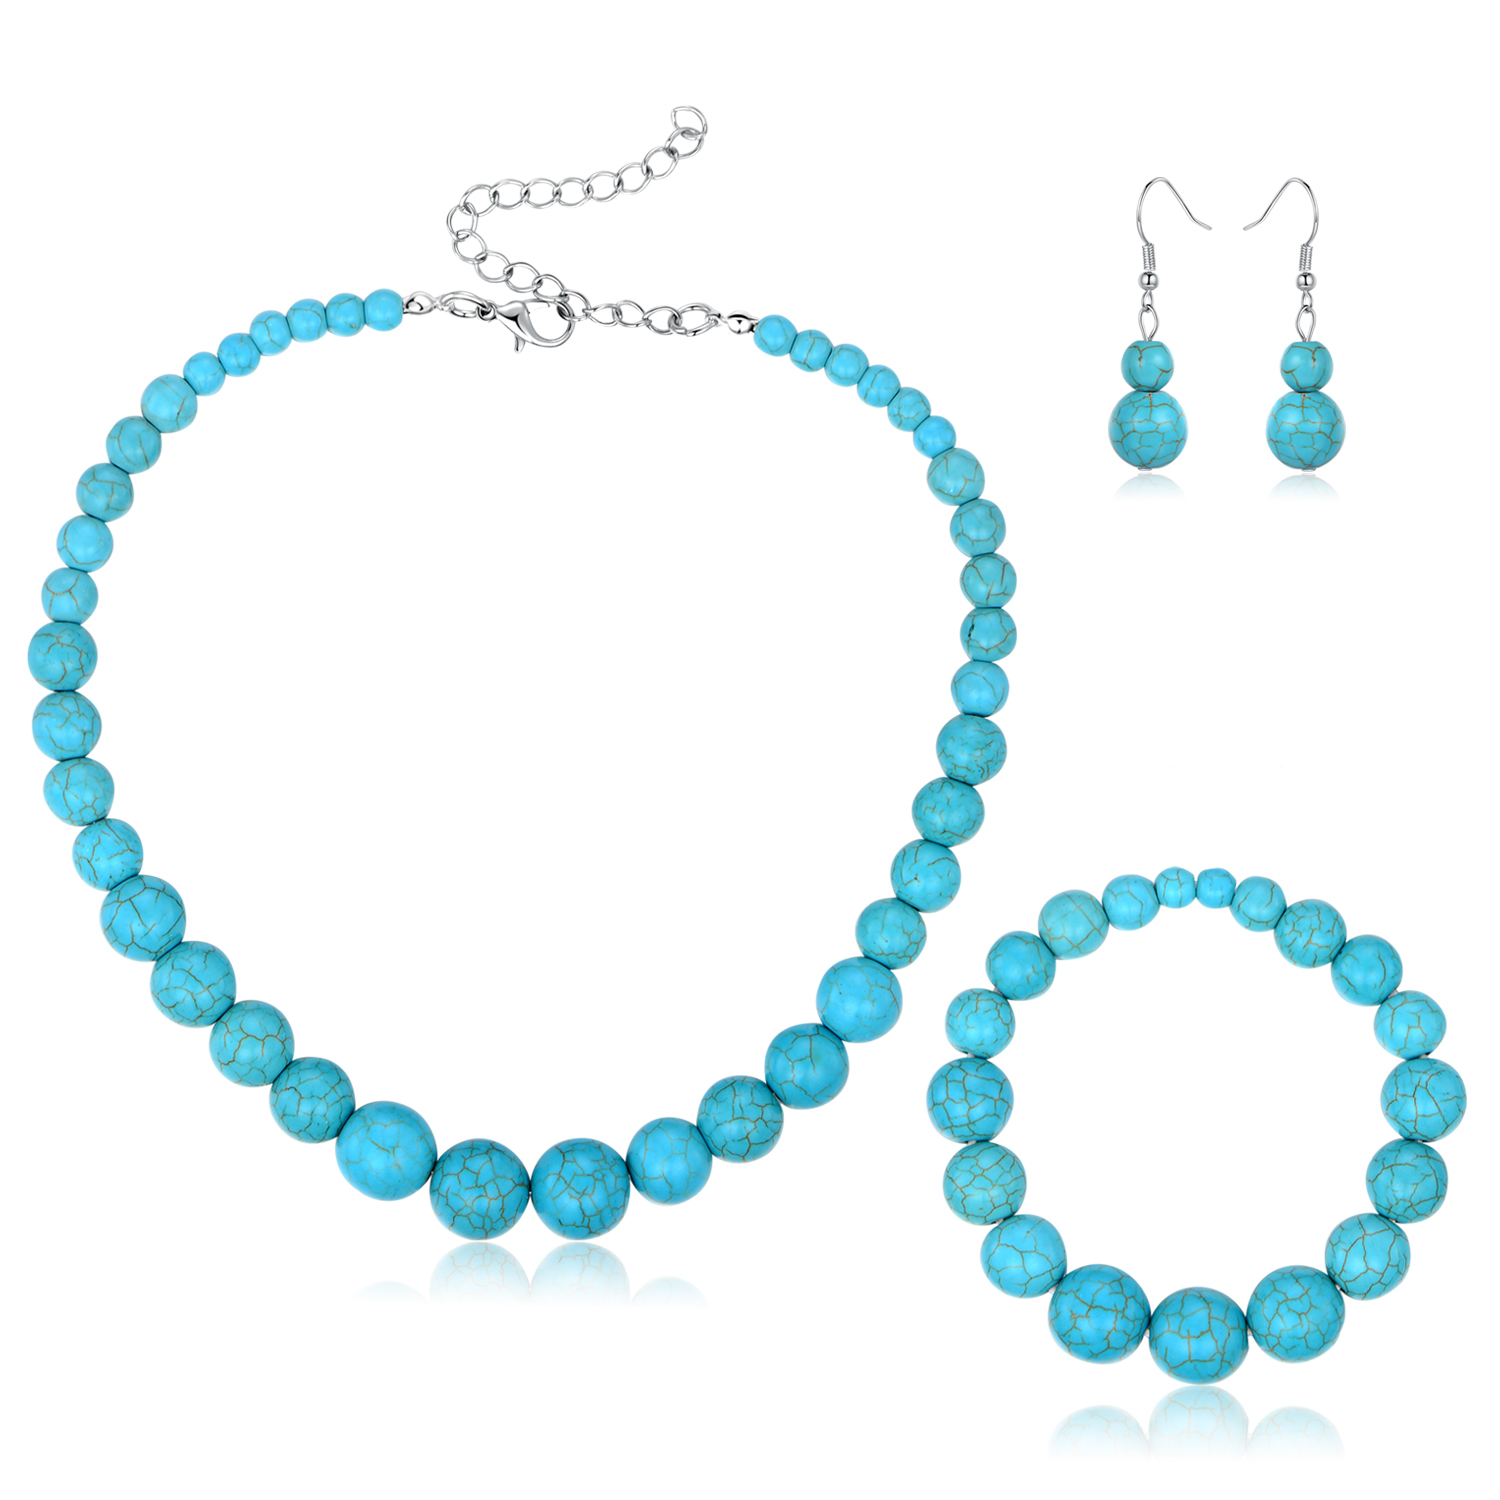 Silver Turquoise Ball Earrings, Bracelet, and Necklace Set 5a7c9dc519a95402870ec1aa